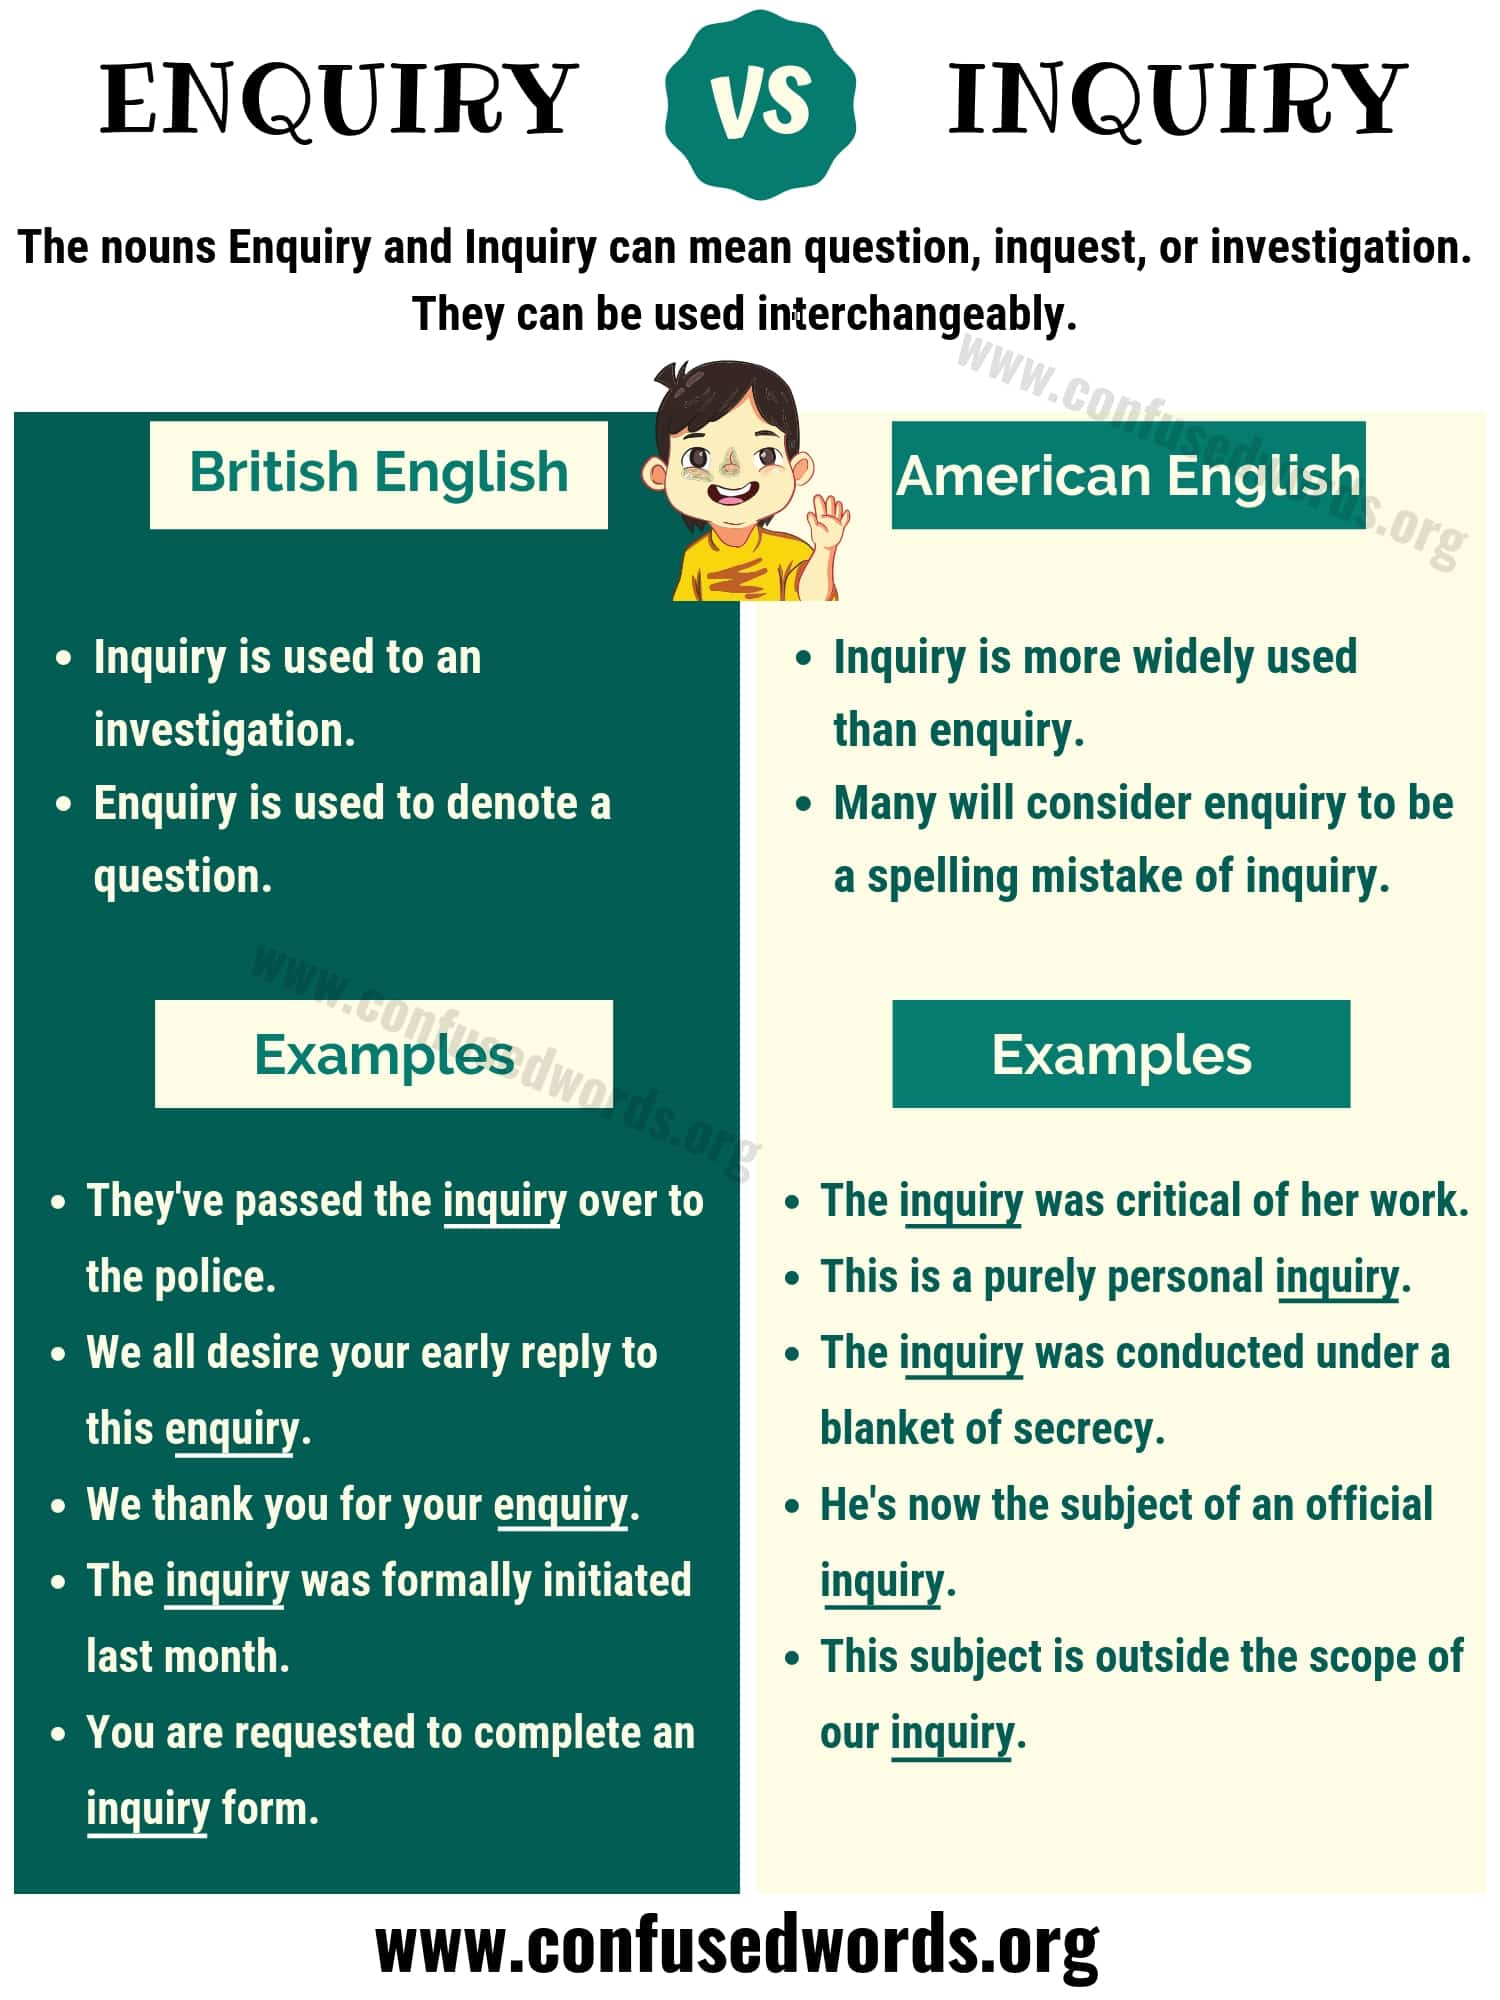 Enquiry vs Inquiry